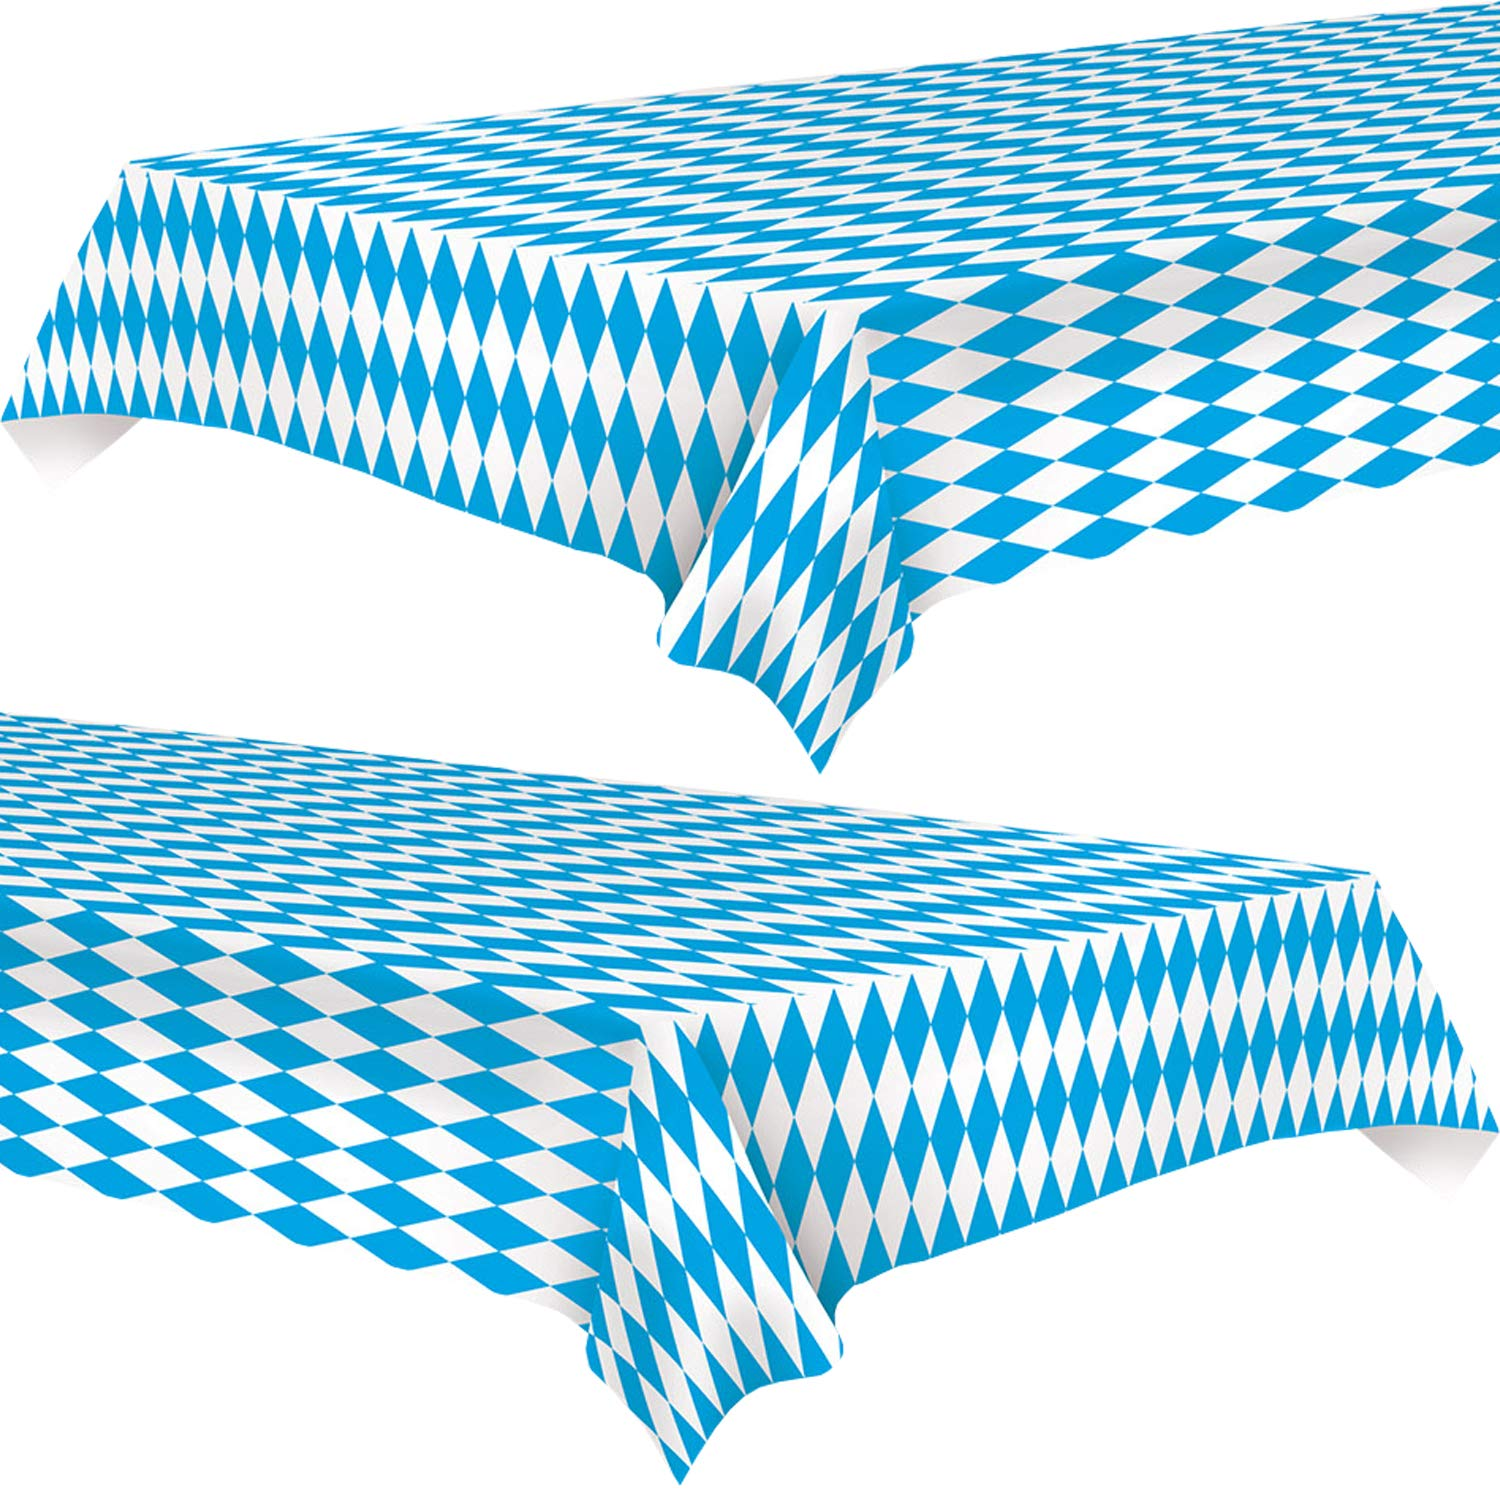 Oktoberfest Party Decoration: Table Cover 54'' x 108'' (2 Pack Plastic tablecloths)